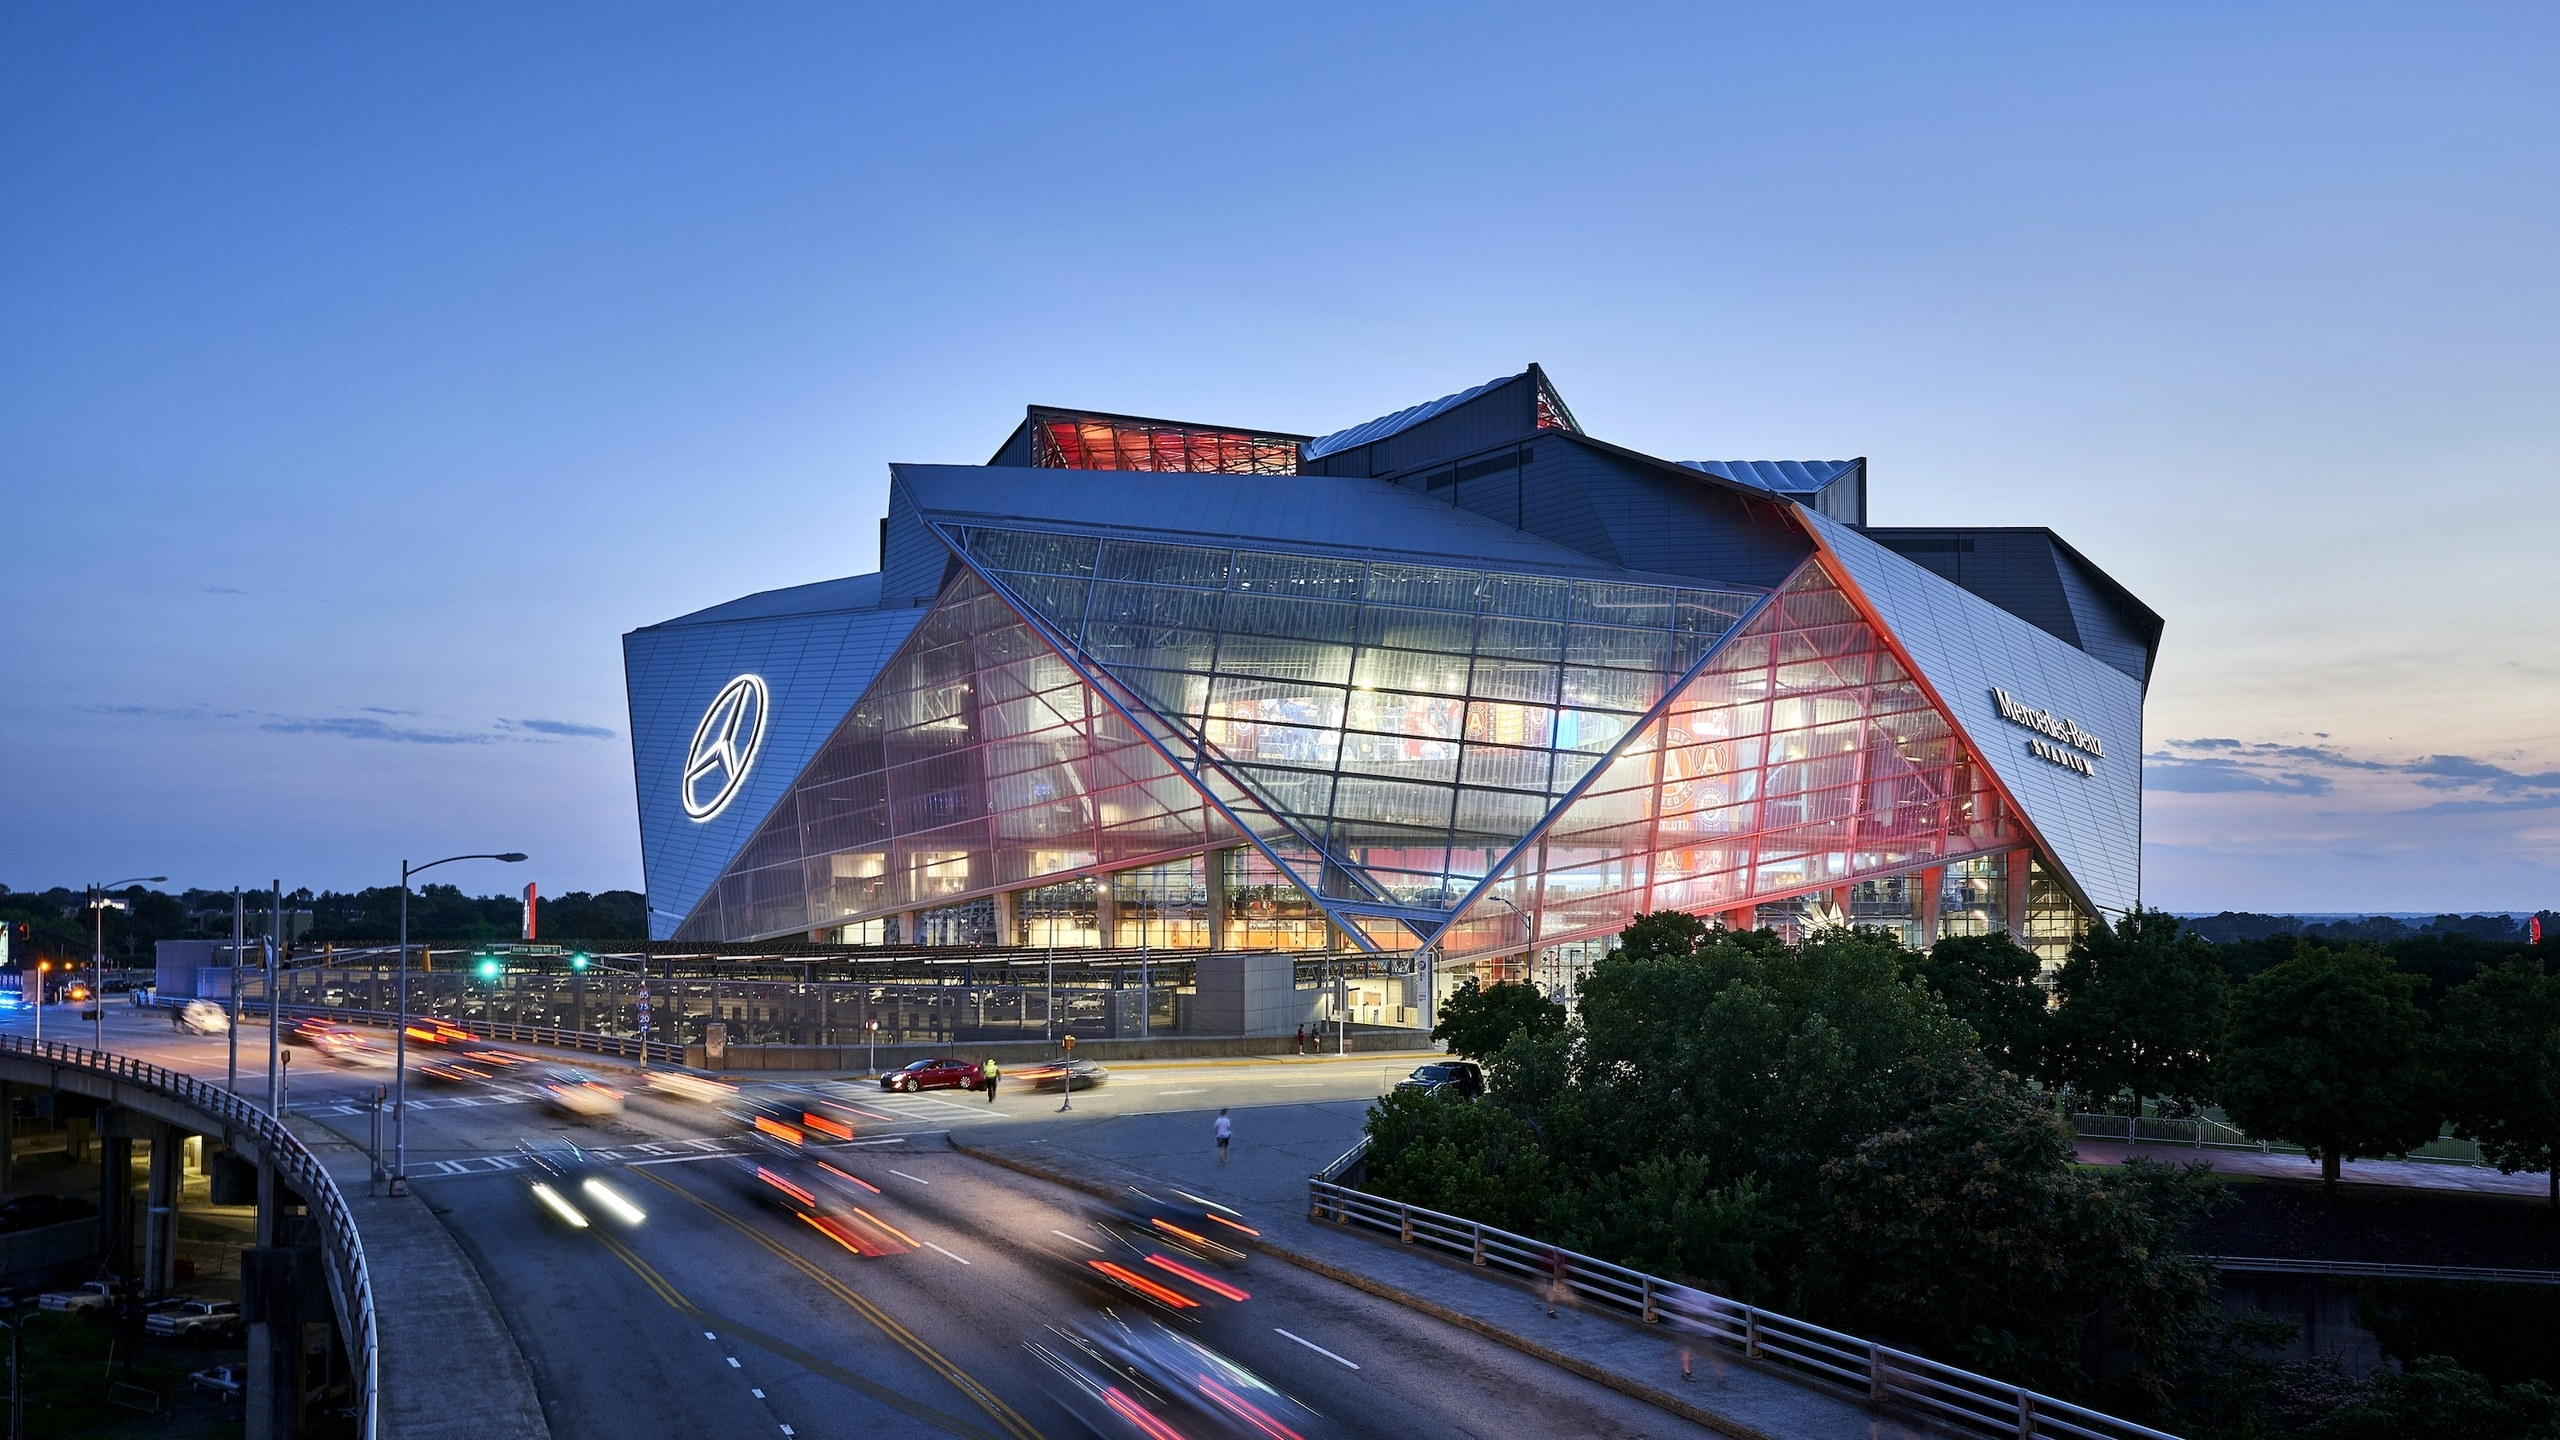 2019 Super Bowl Stadium: 5 Facts You'll Want To Know inside Super Bowl Seating Capacity 2019